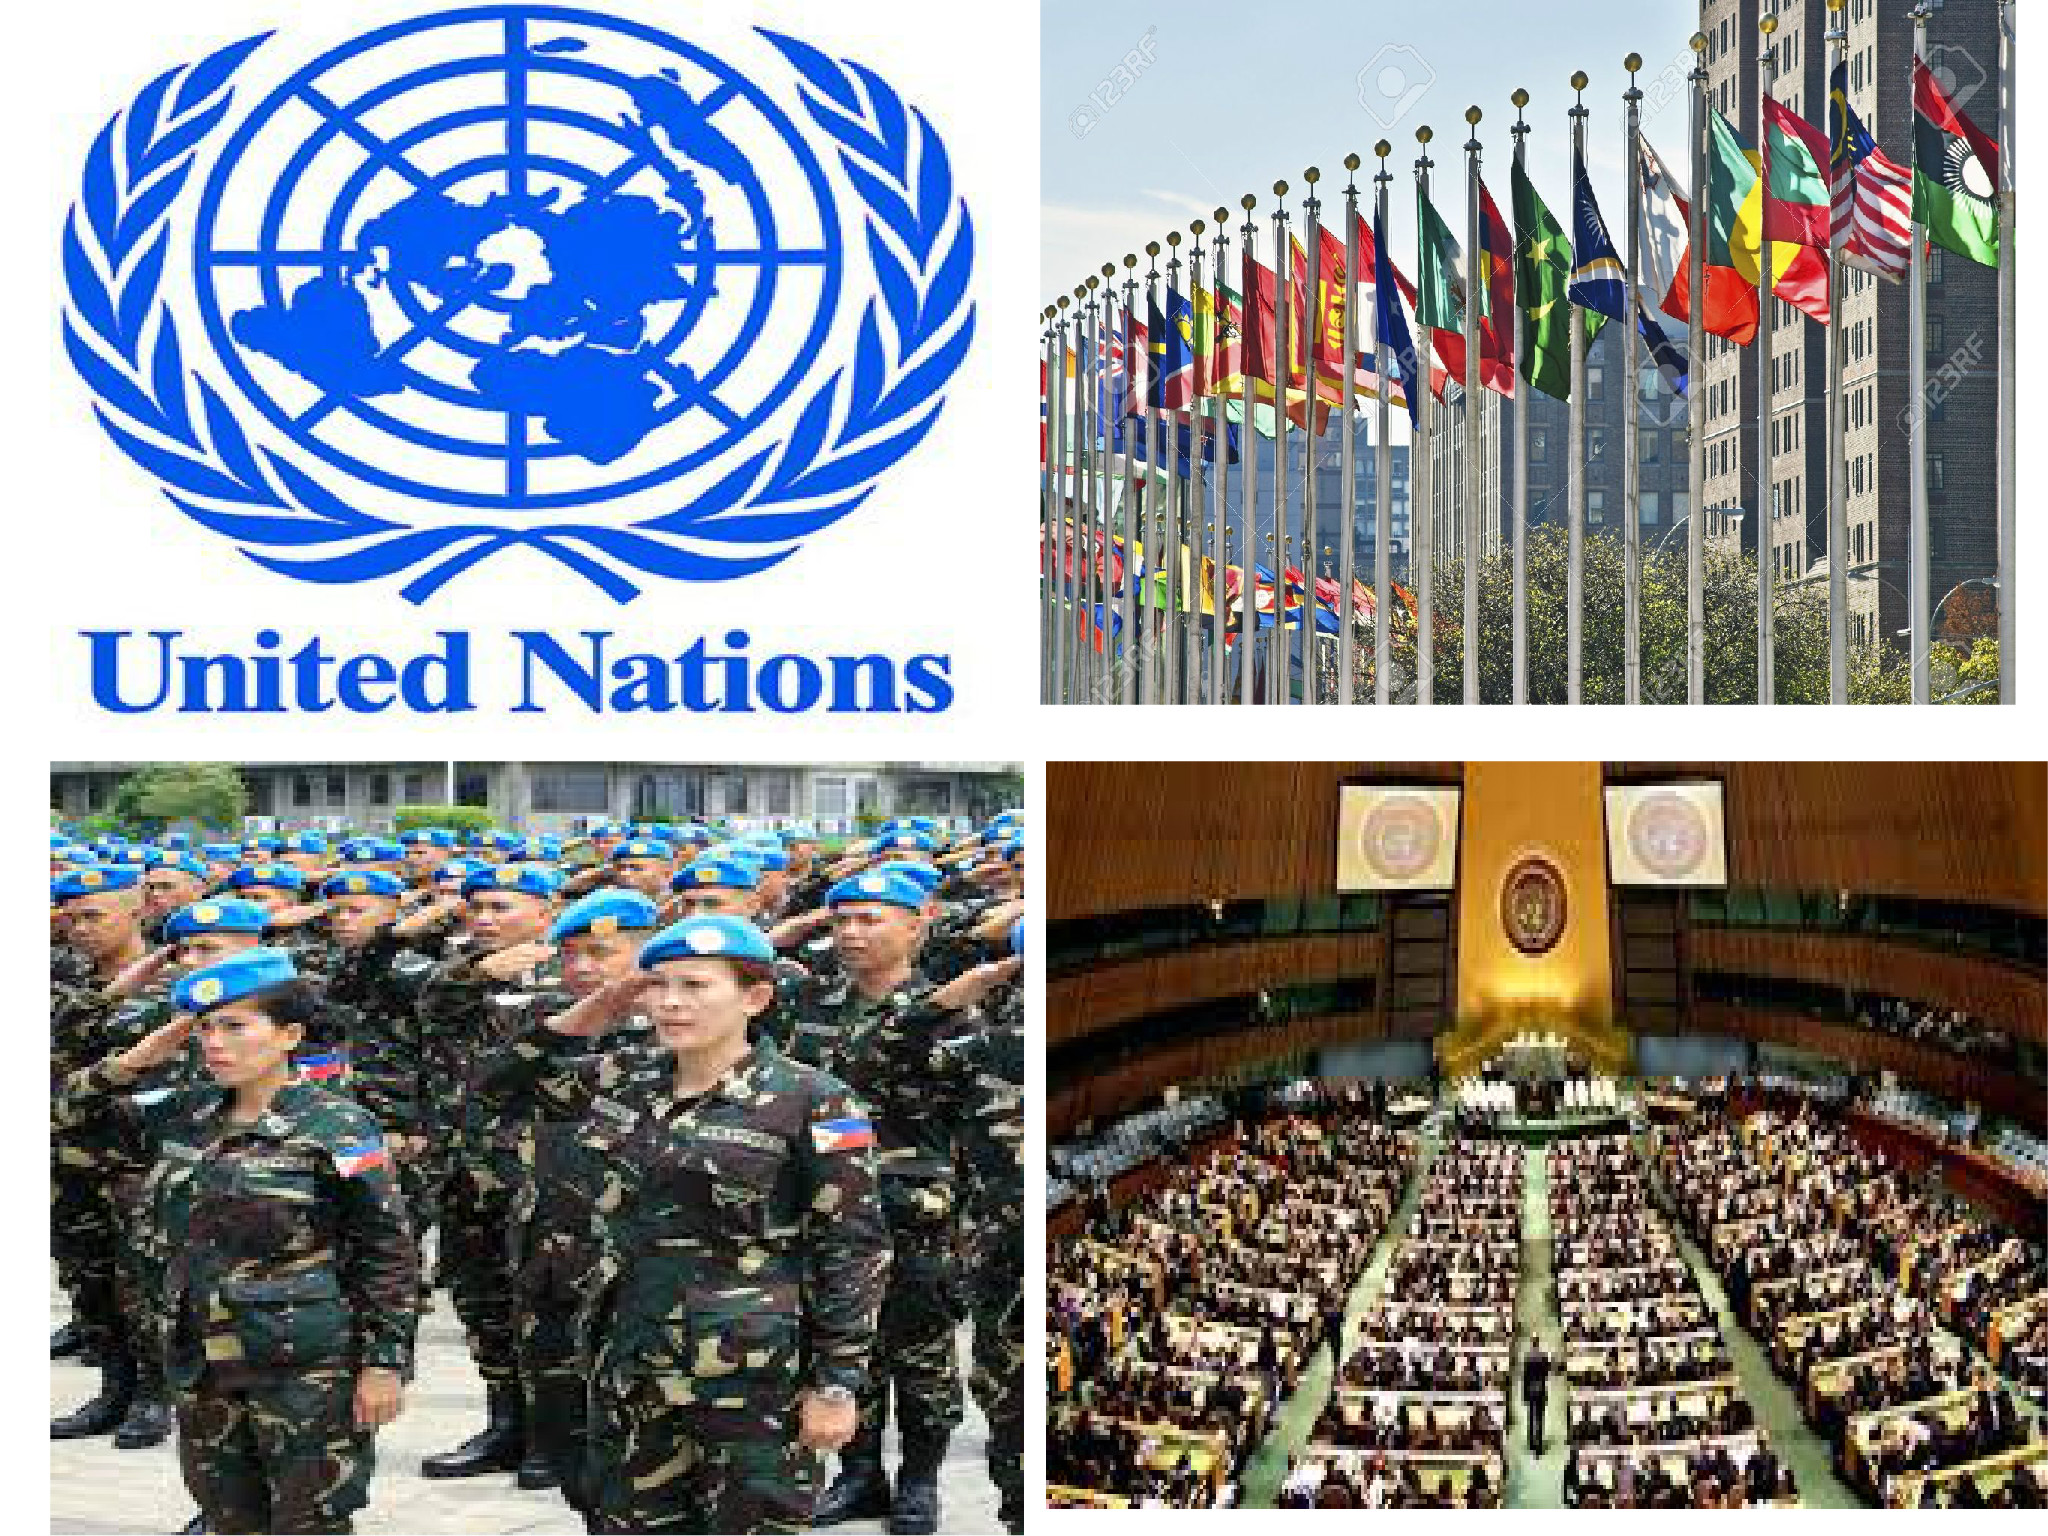 the united nations underlines essay The role of the united nations in the changing world piotr bystrek, ibp ¹ 12062 we the peoples of the united nations determined to save succeeding generations from the scourge of war, which twice in our lifetime has brought untold sorrow to mankind, and.